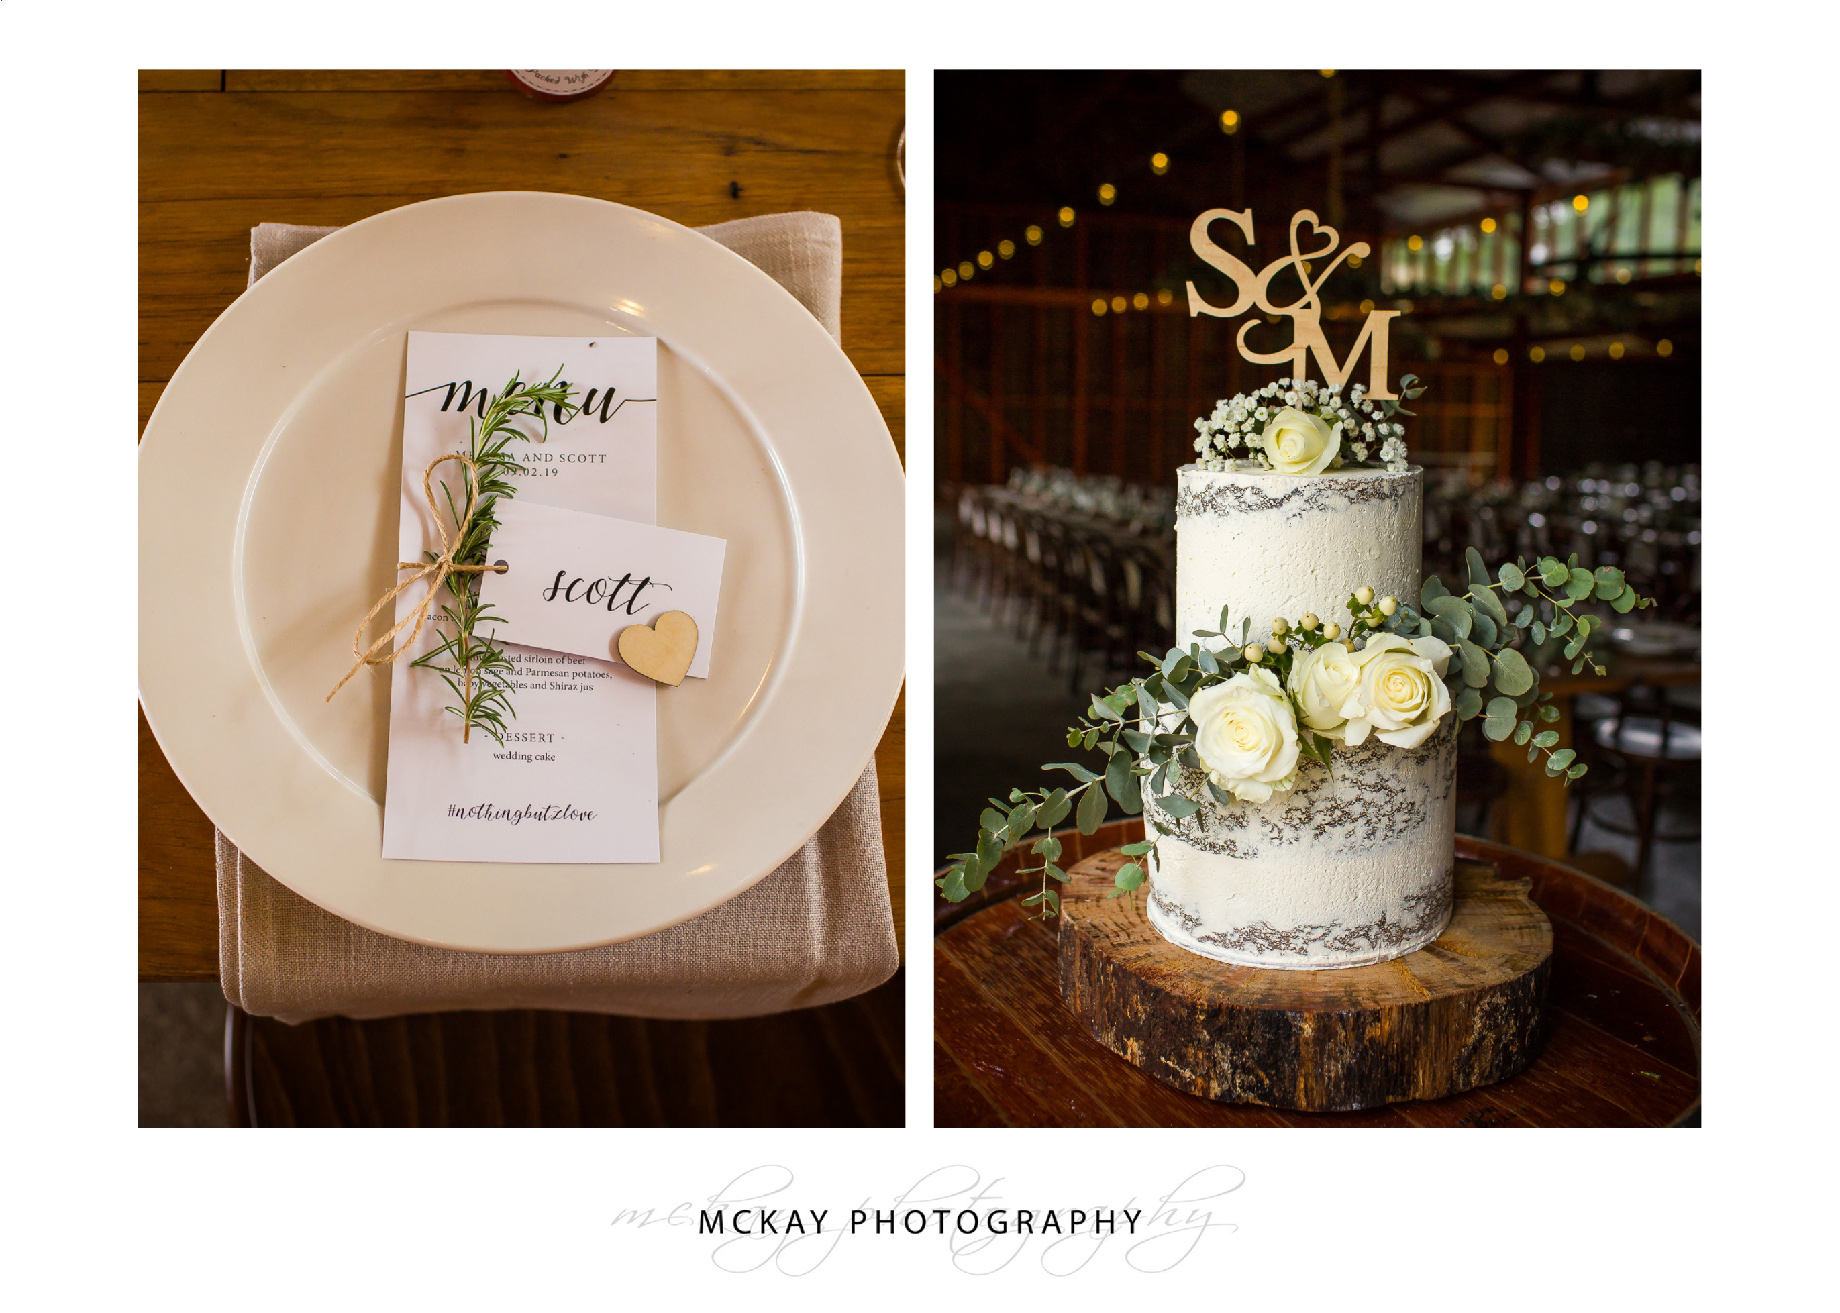 Wedding cake and table setting details